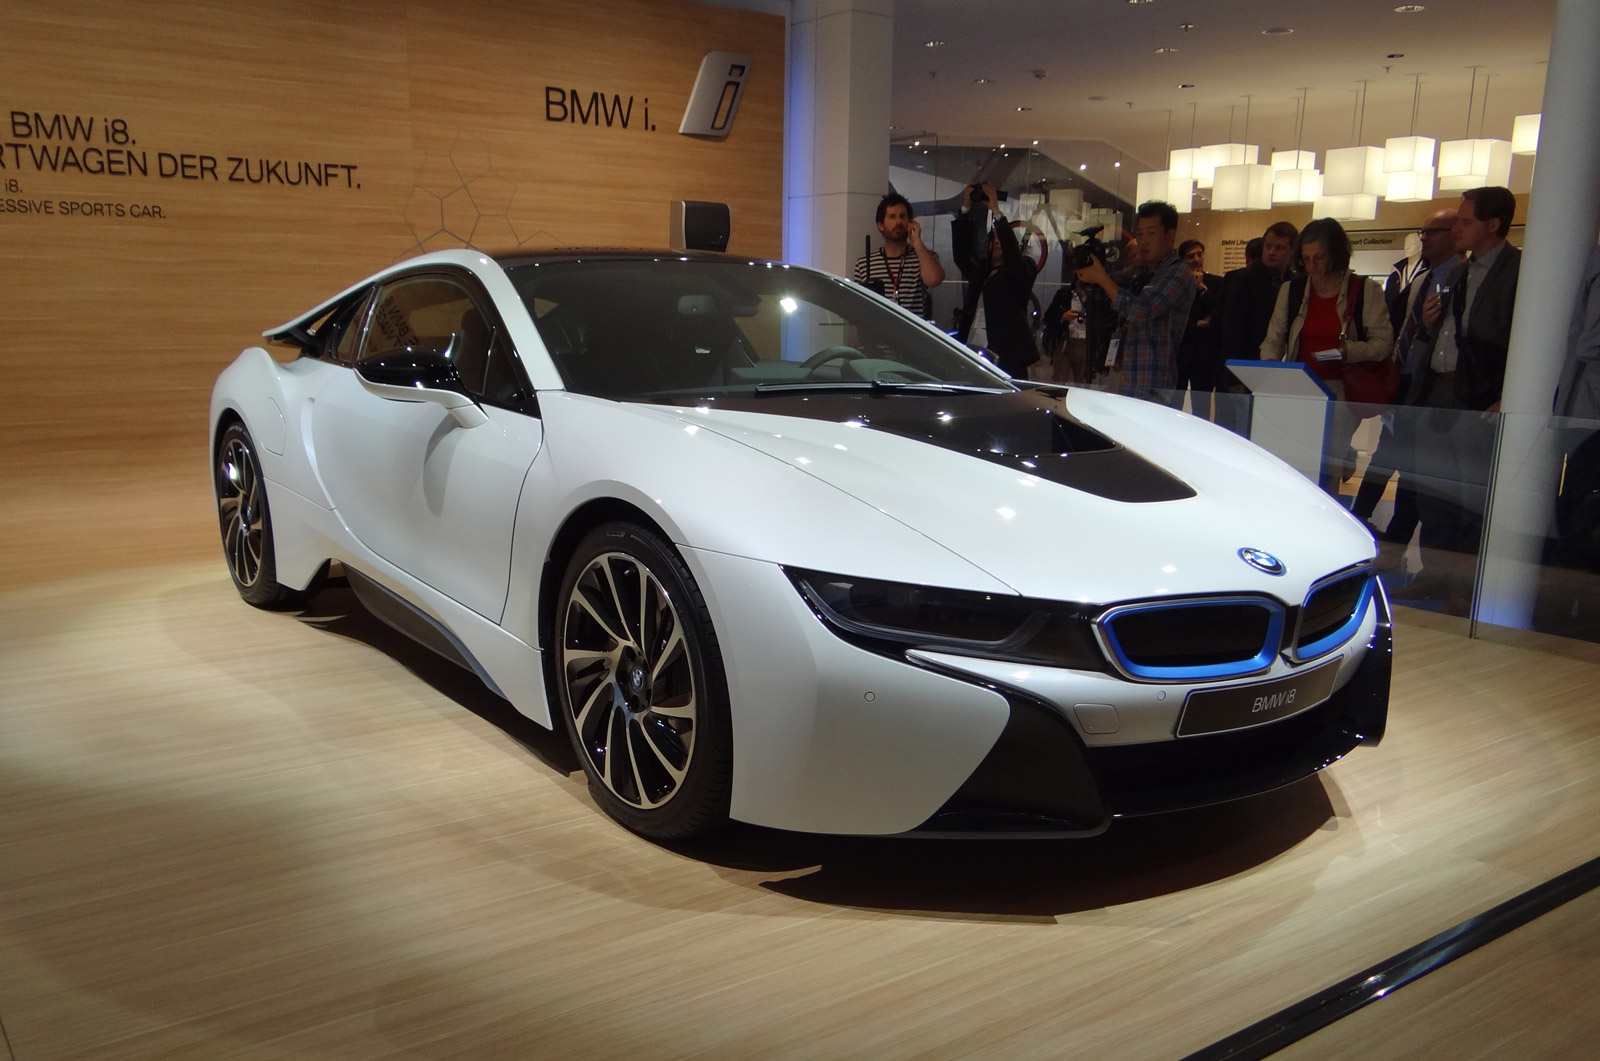 8 Million Dollar Car Wallpapers 2015 Bmw I8 Plug In Hybrid Sports Coupe Guided Video Tour